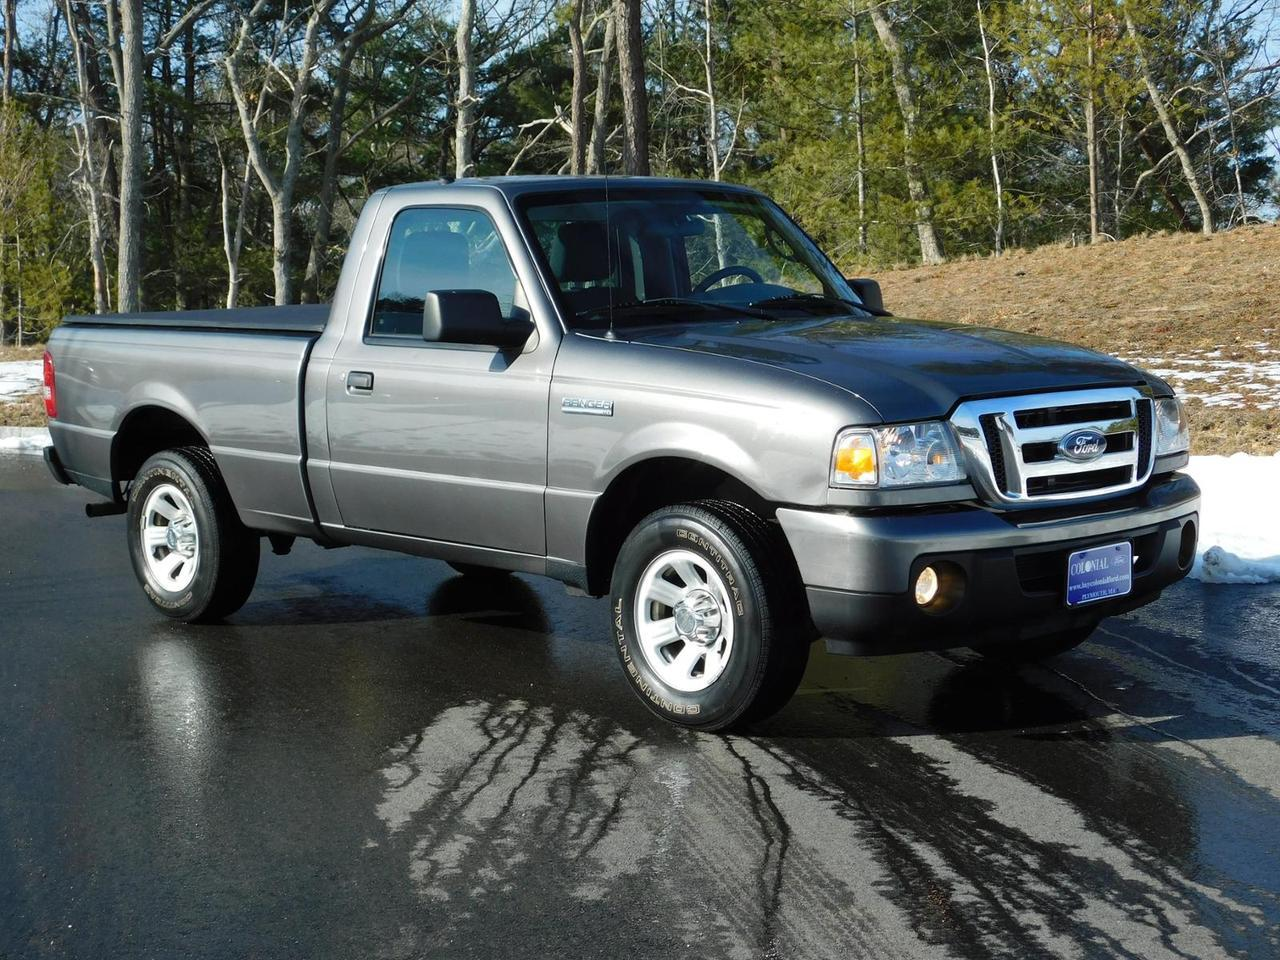 2010 Ford Ranger Regular Cab XLT 2 Wheel Drive